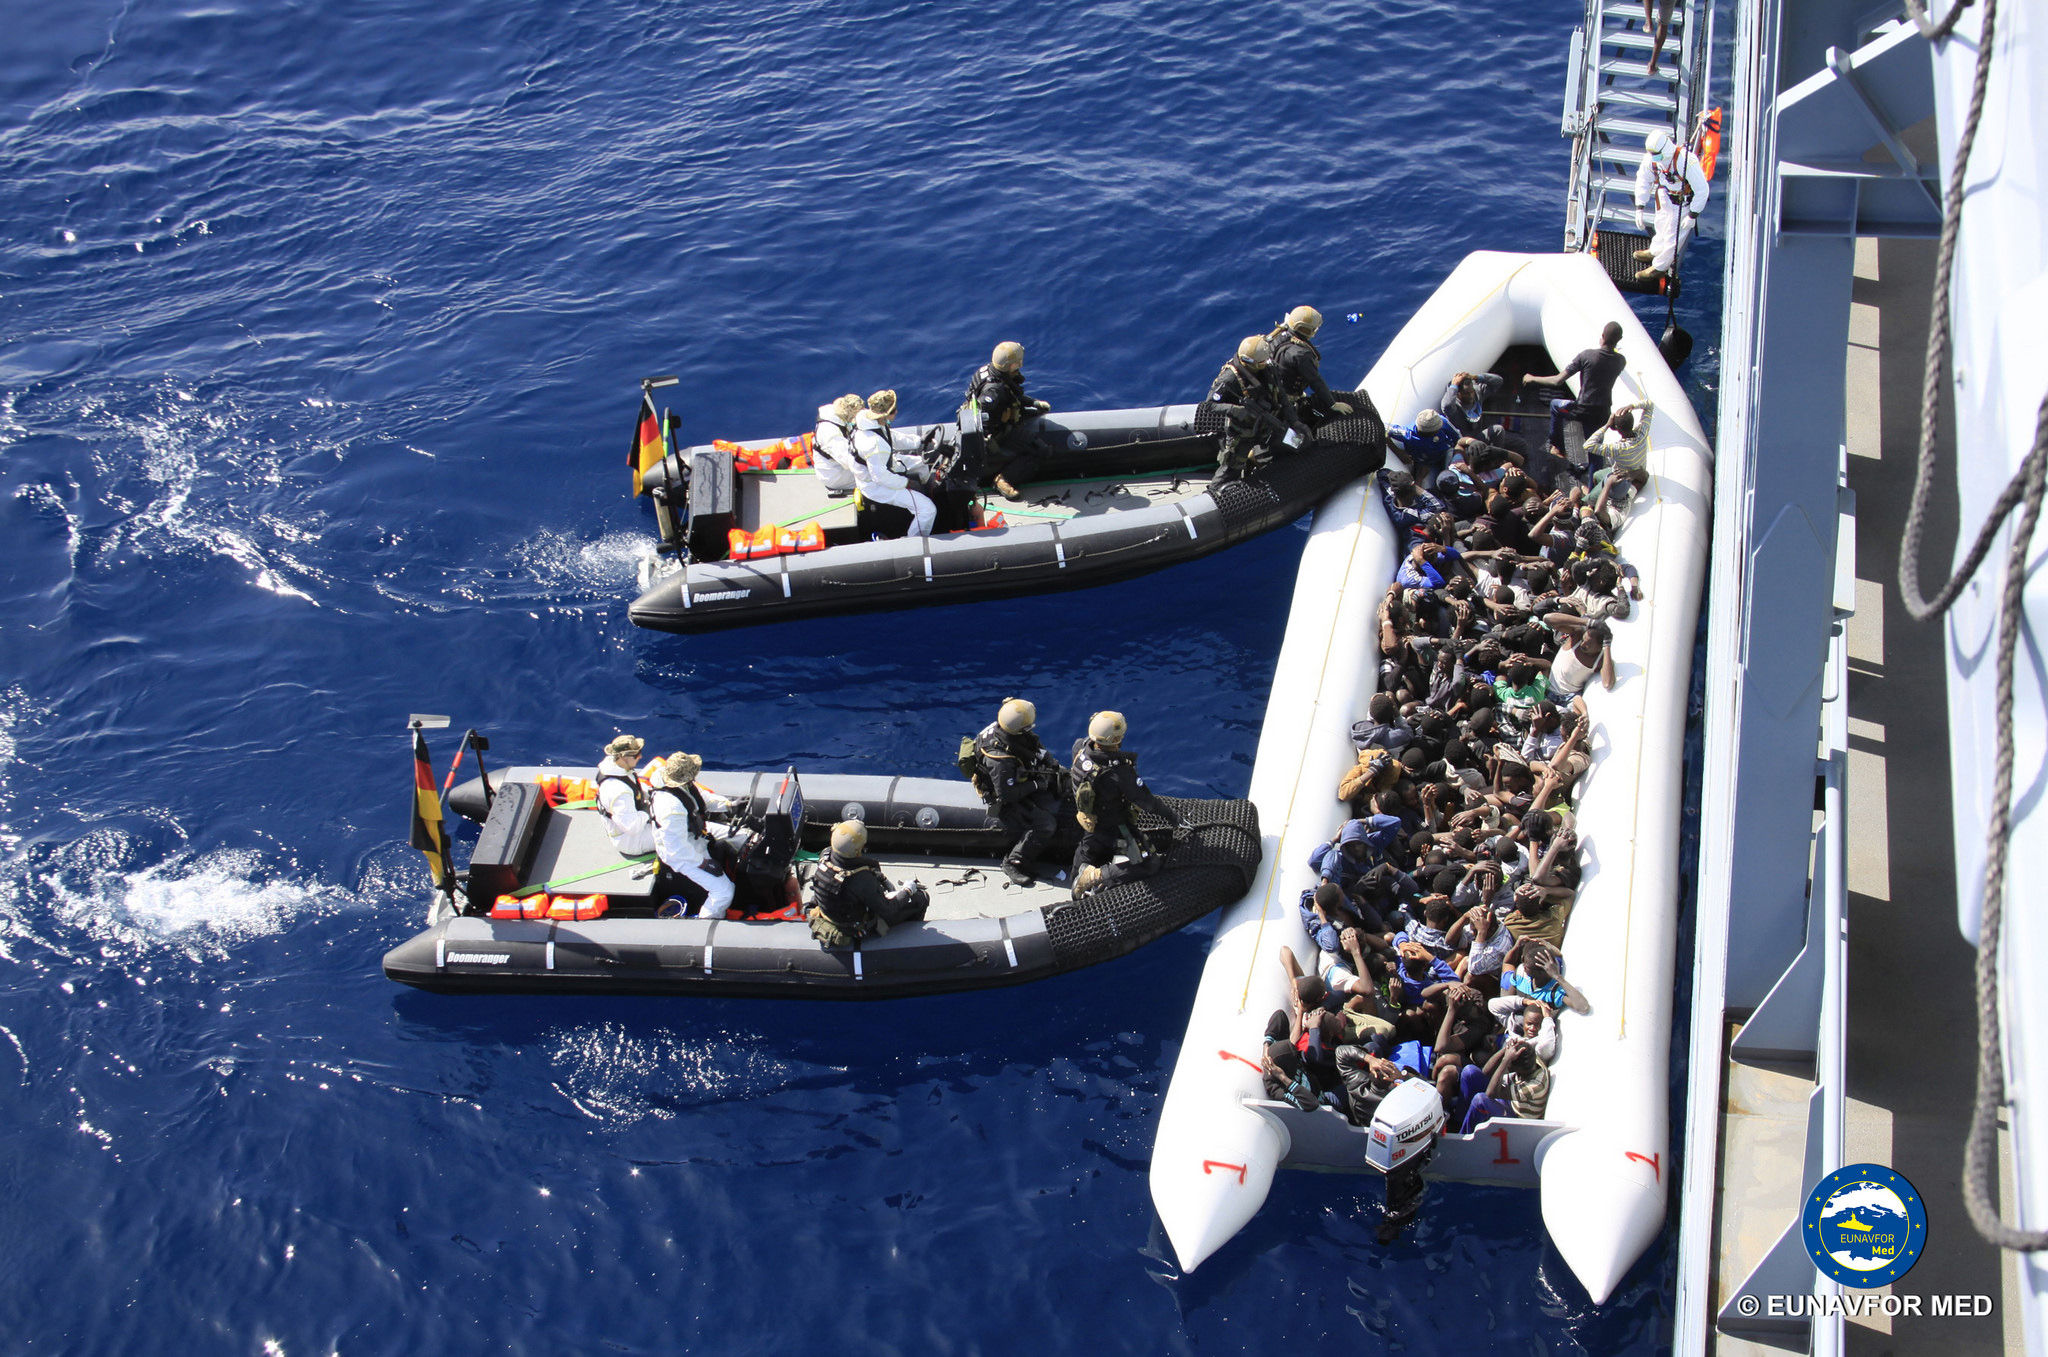 Facebook must prevent people smugglers